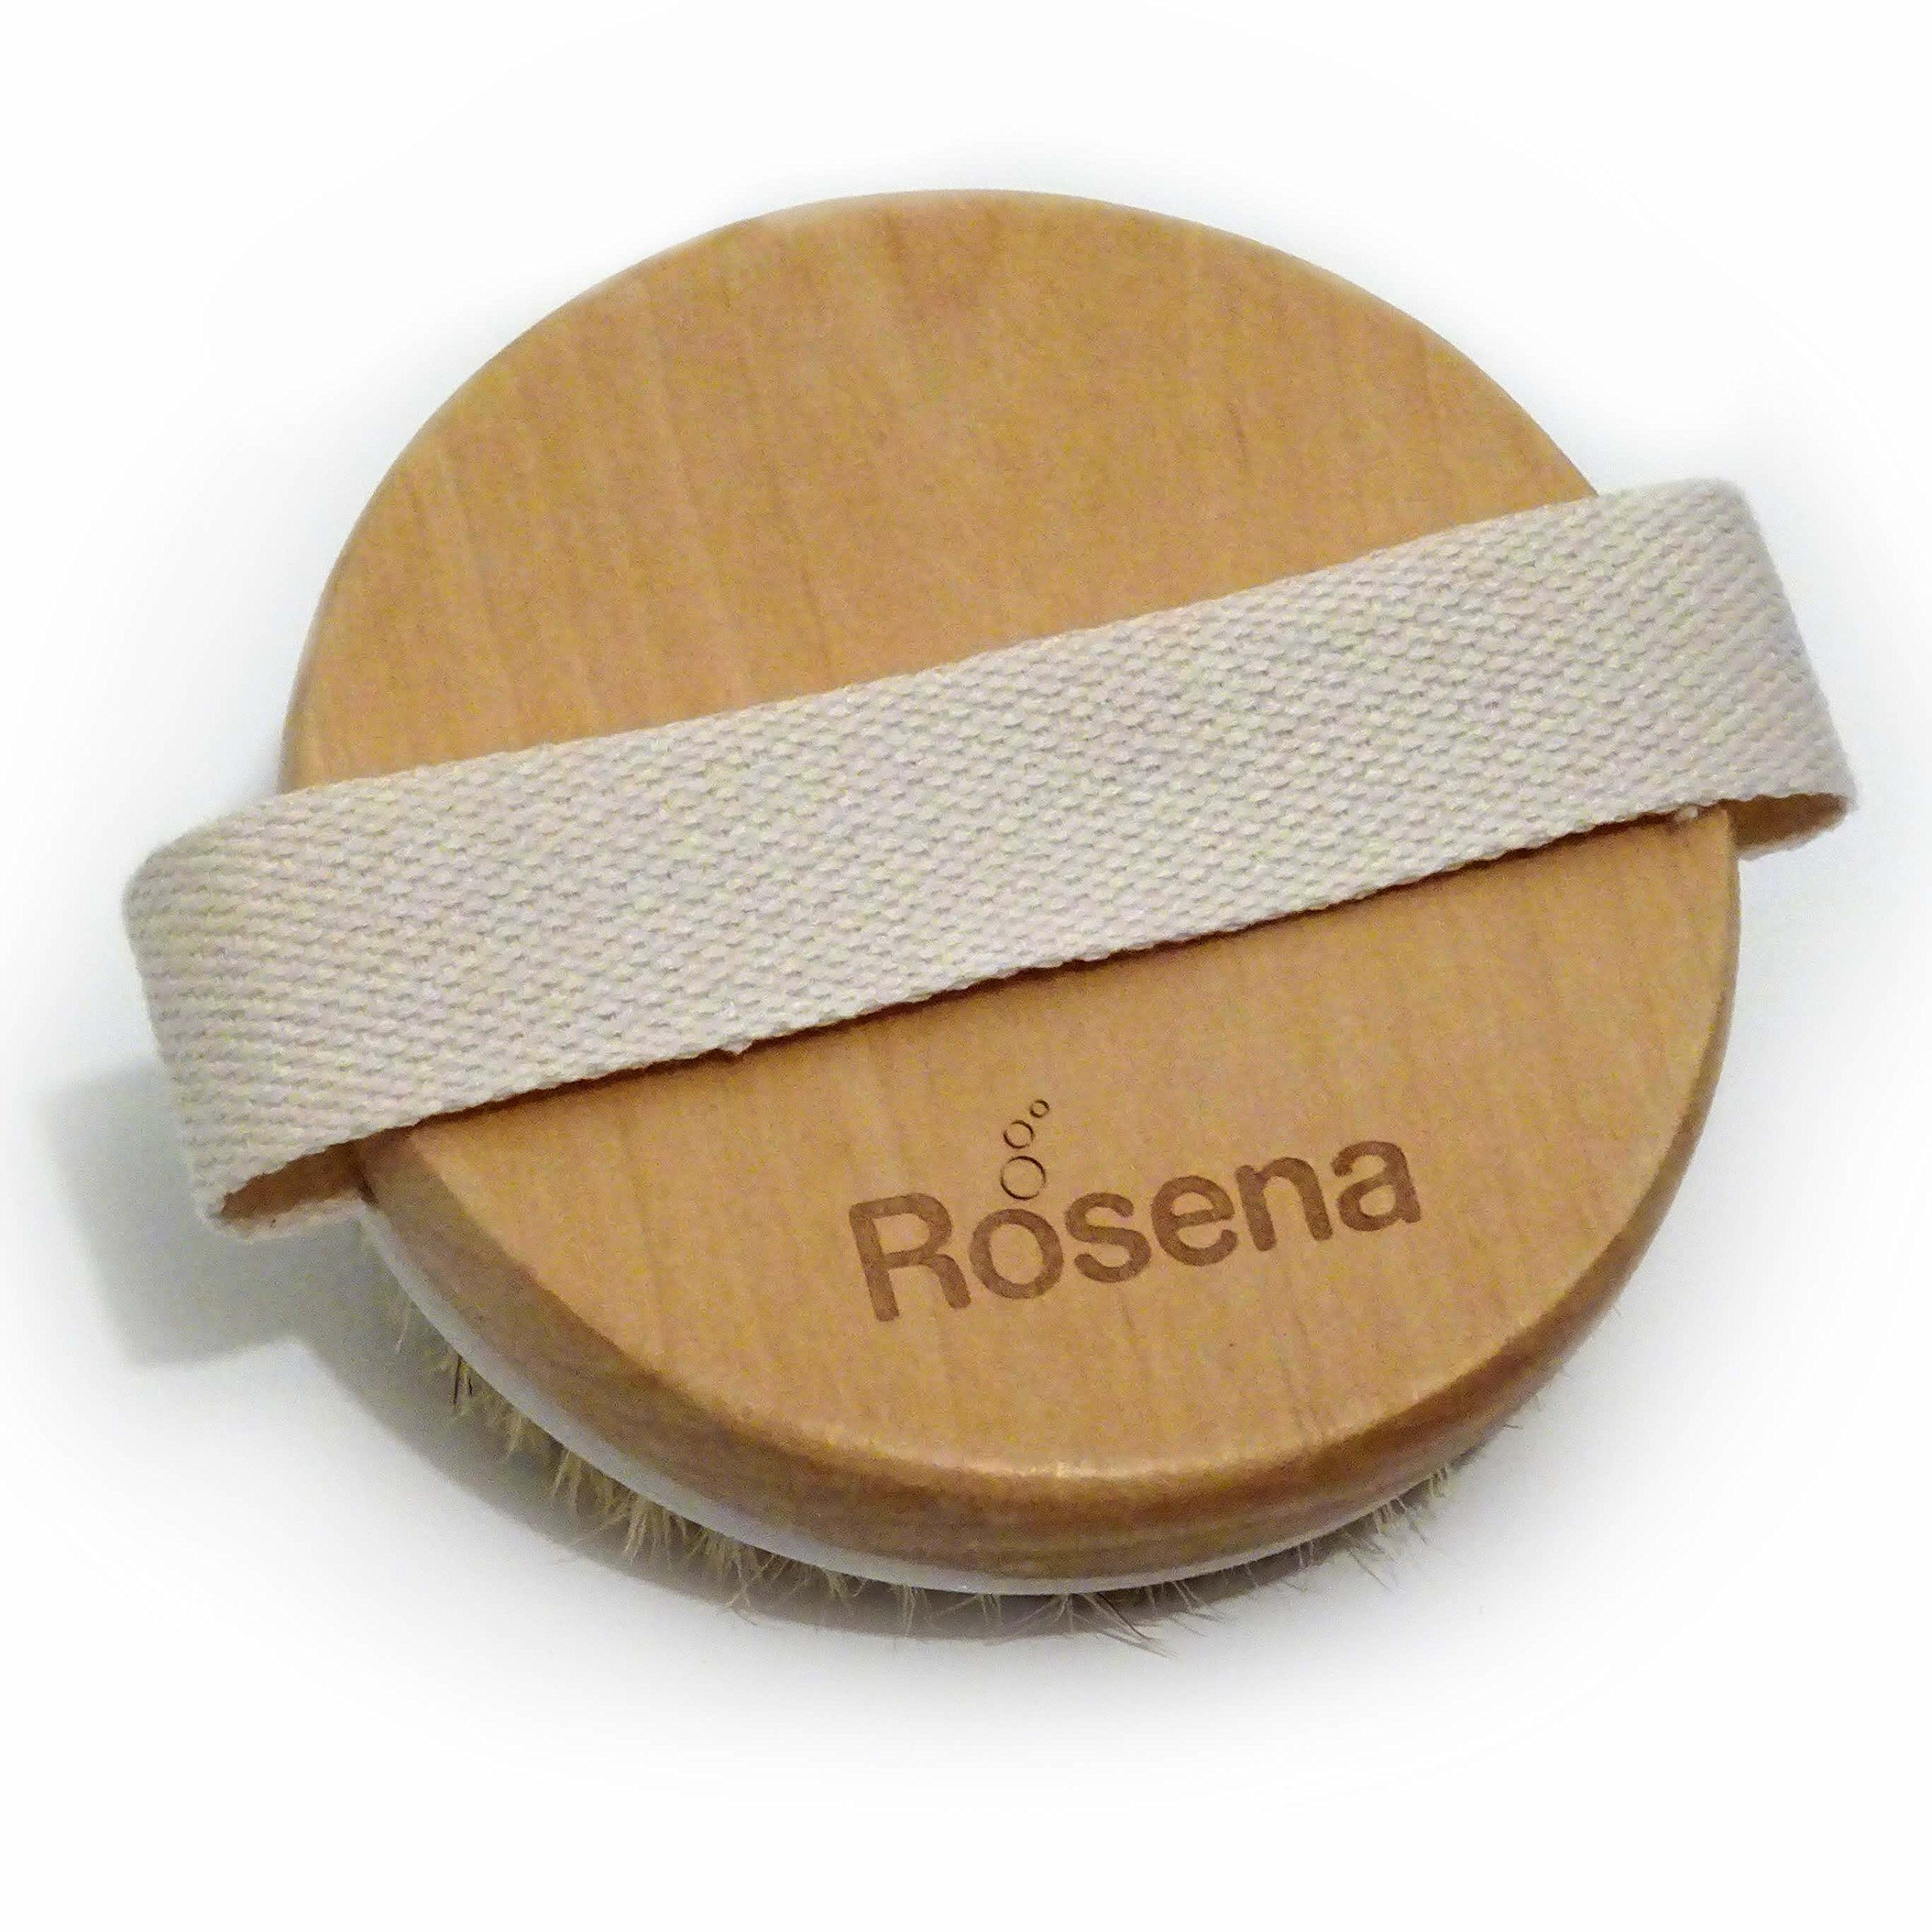 Dry Brushing Body Brush - Best for Exfoliating Dry Skin, Lymphatic Drainage and Cellulite Treatment - Organic Spa Exfoliation and Massage Scrub Brush with Natural Boar Bristles by Rosena (Image #2)